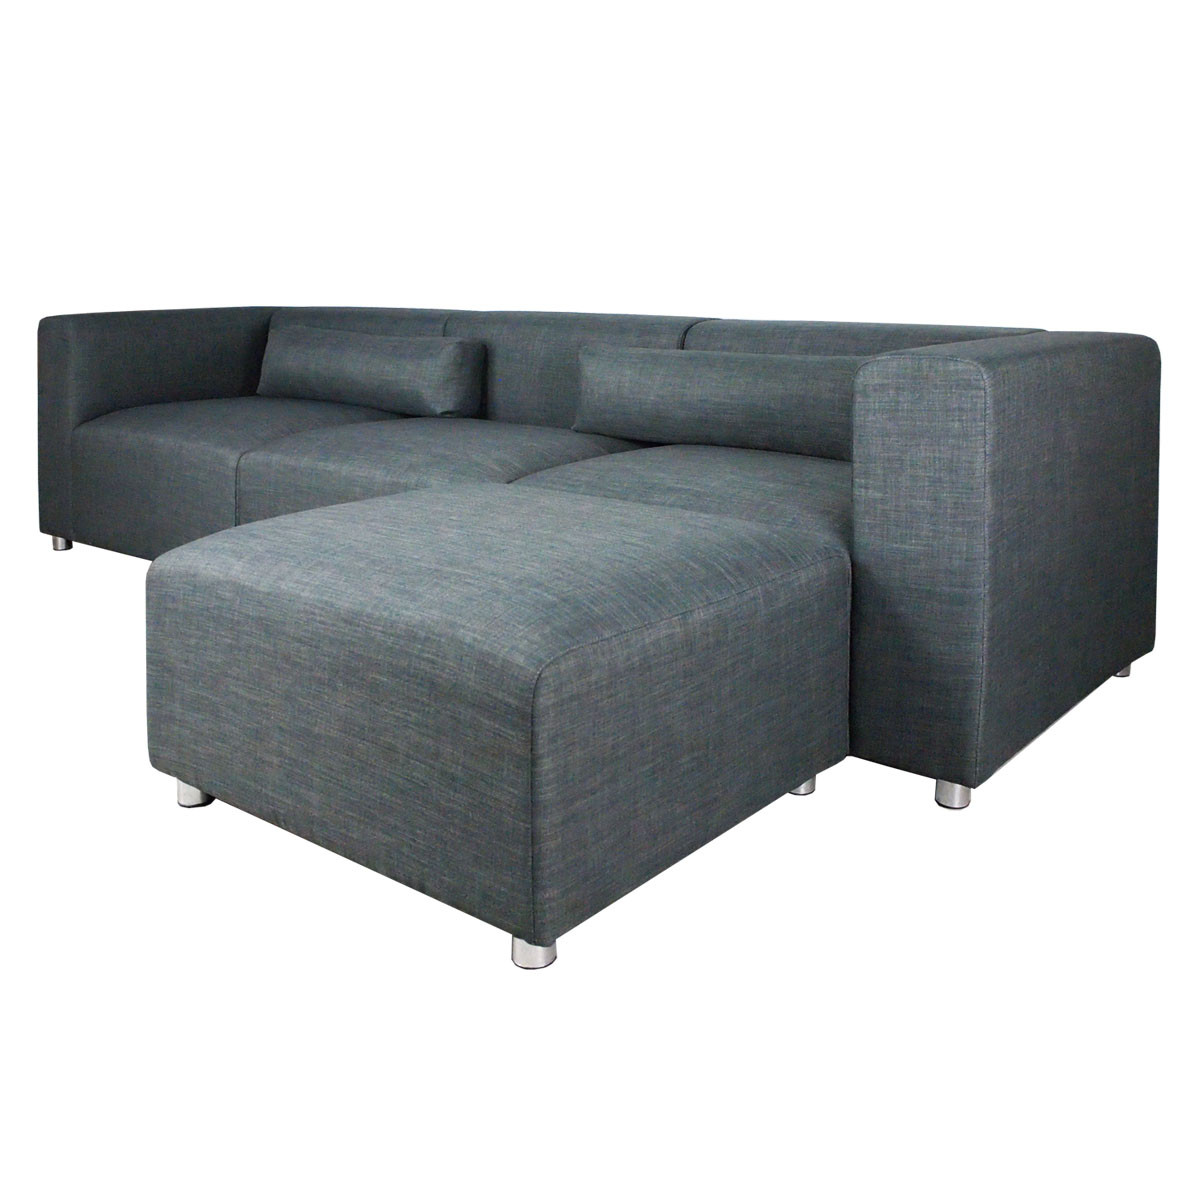 Modular Furniture Sofa: Houston 4 Pieces Modular Sofa Grey